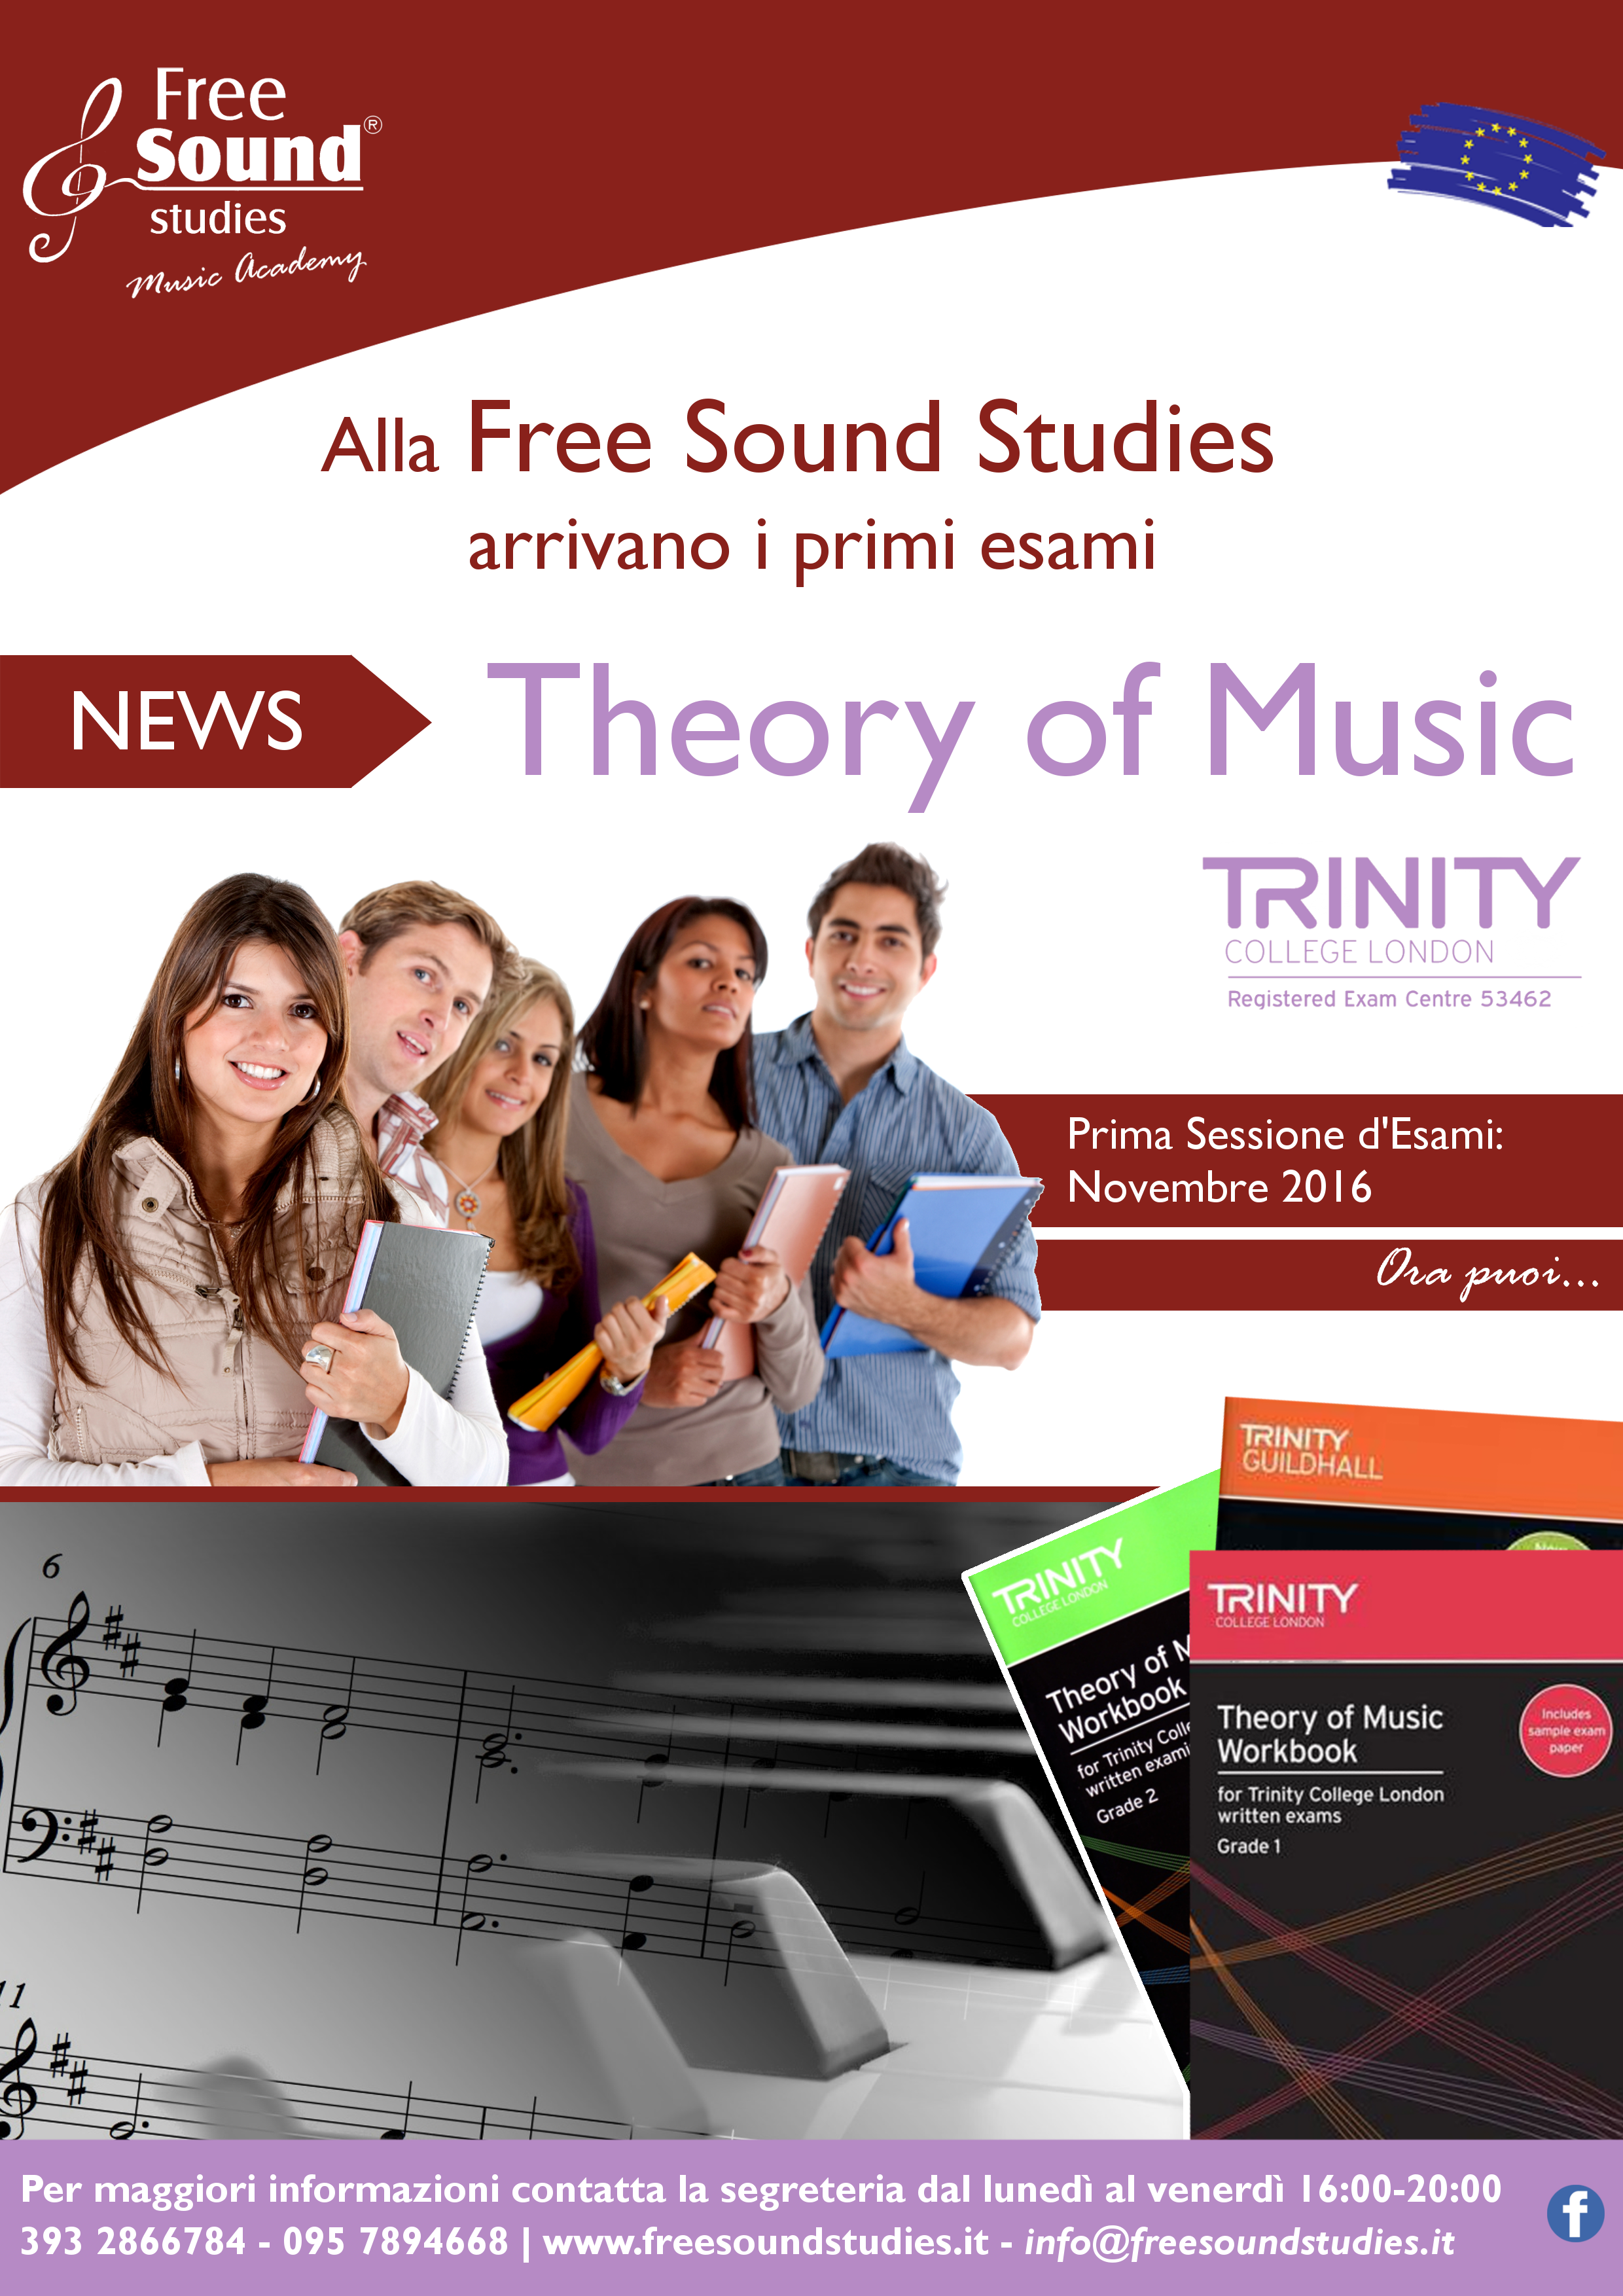 NEWS: Theory of Music - Trinity